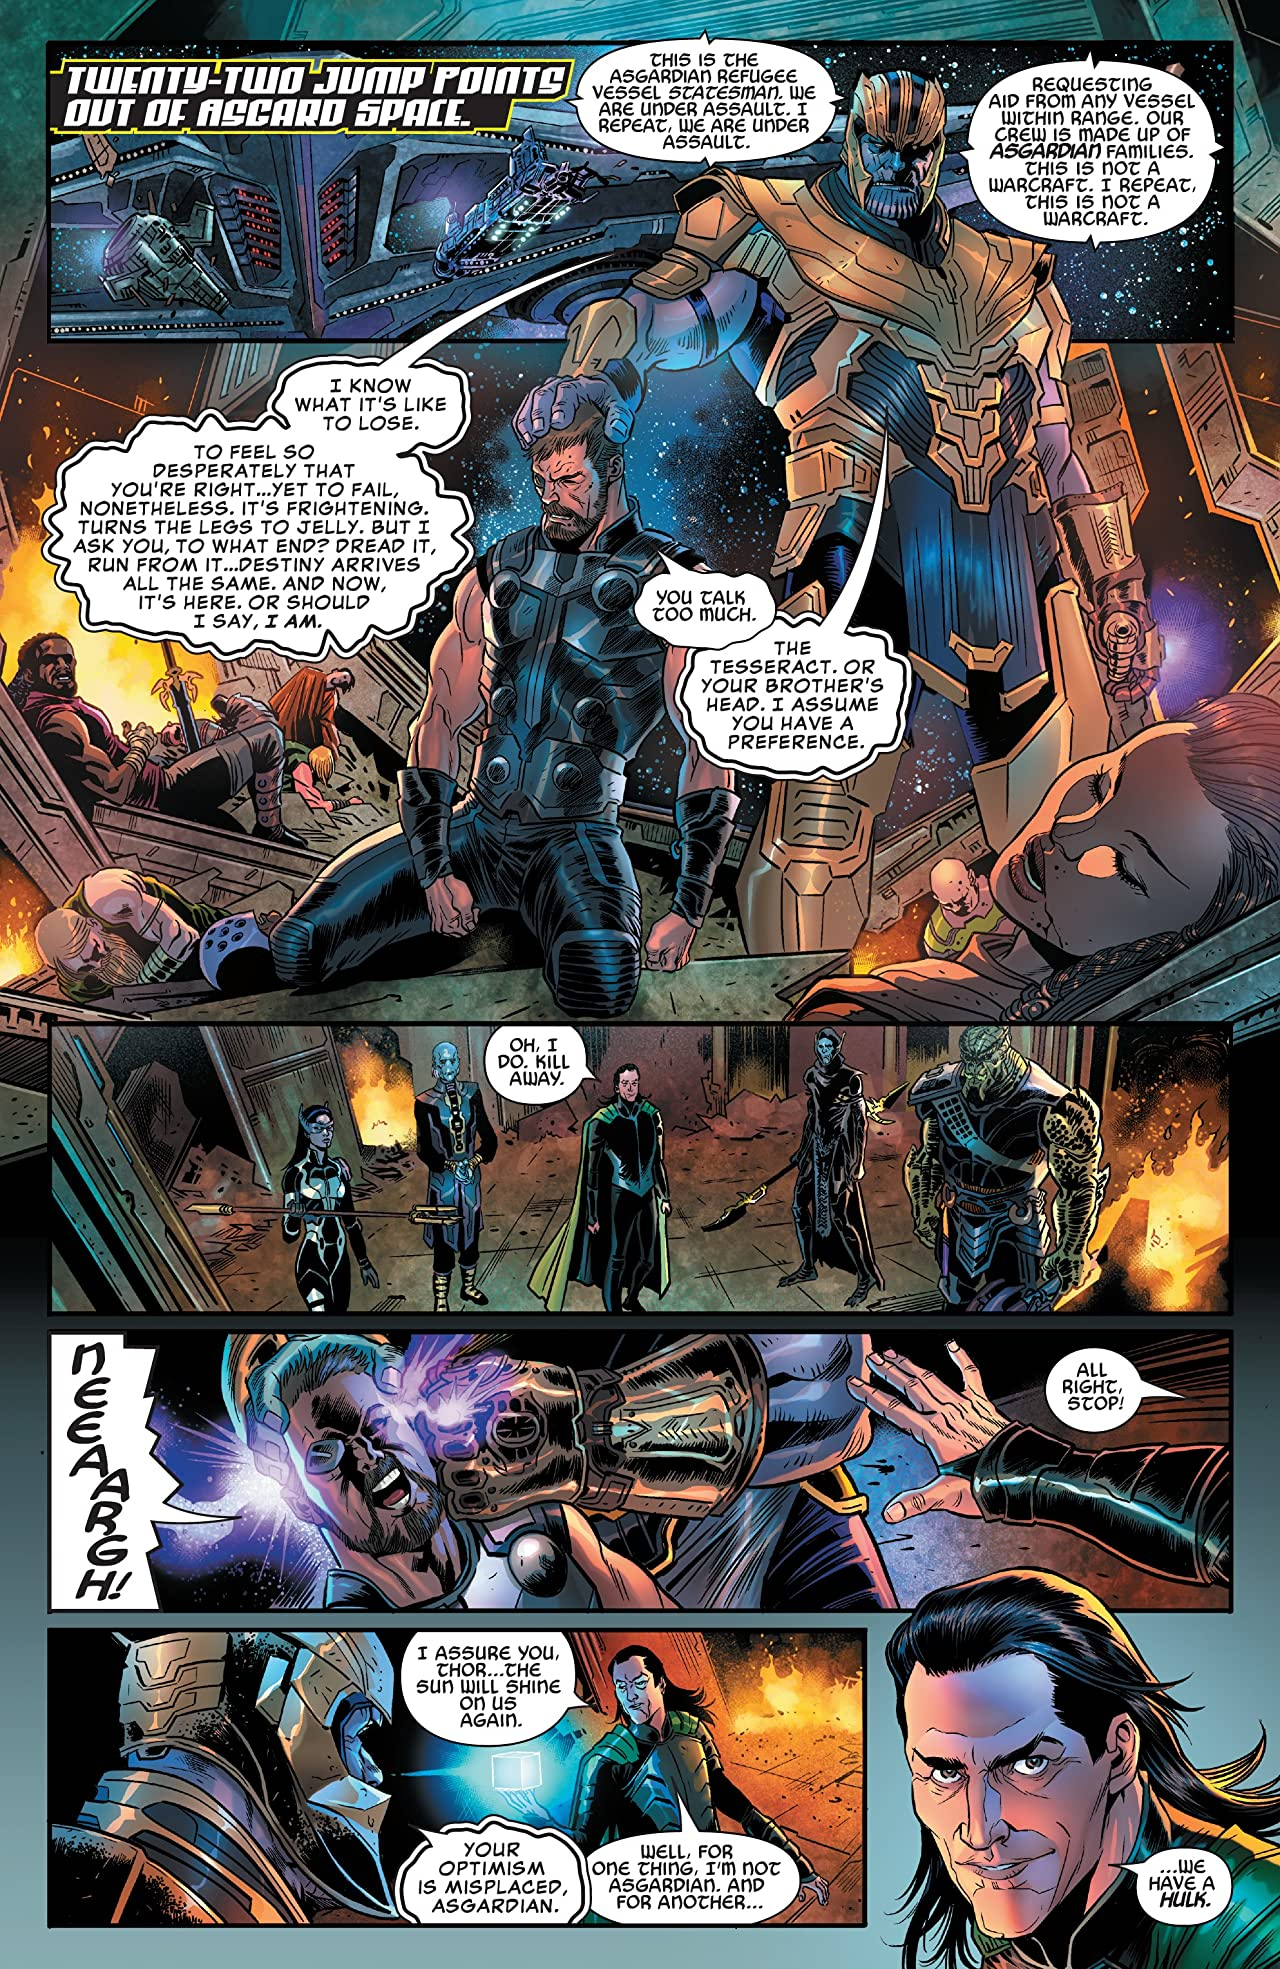 Marvel's Avengers: Endgame Prelude (2018-2019) #1 (of 3)